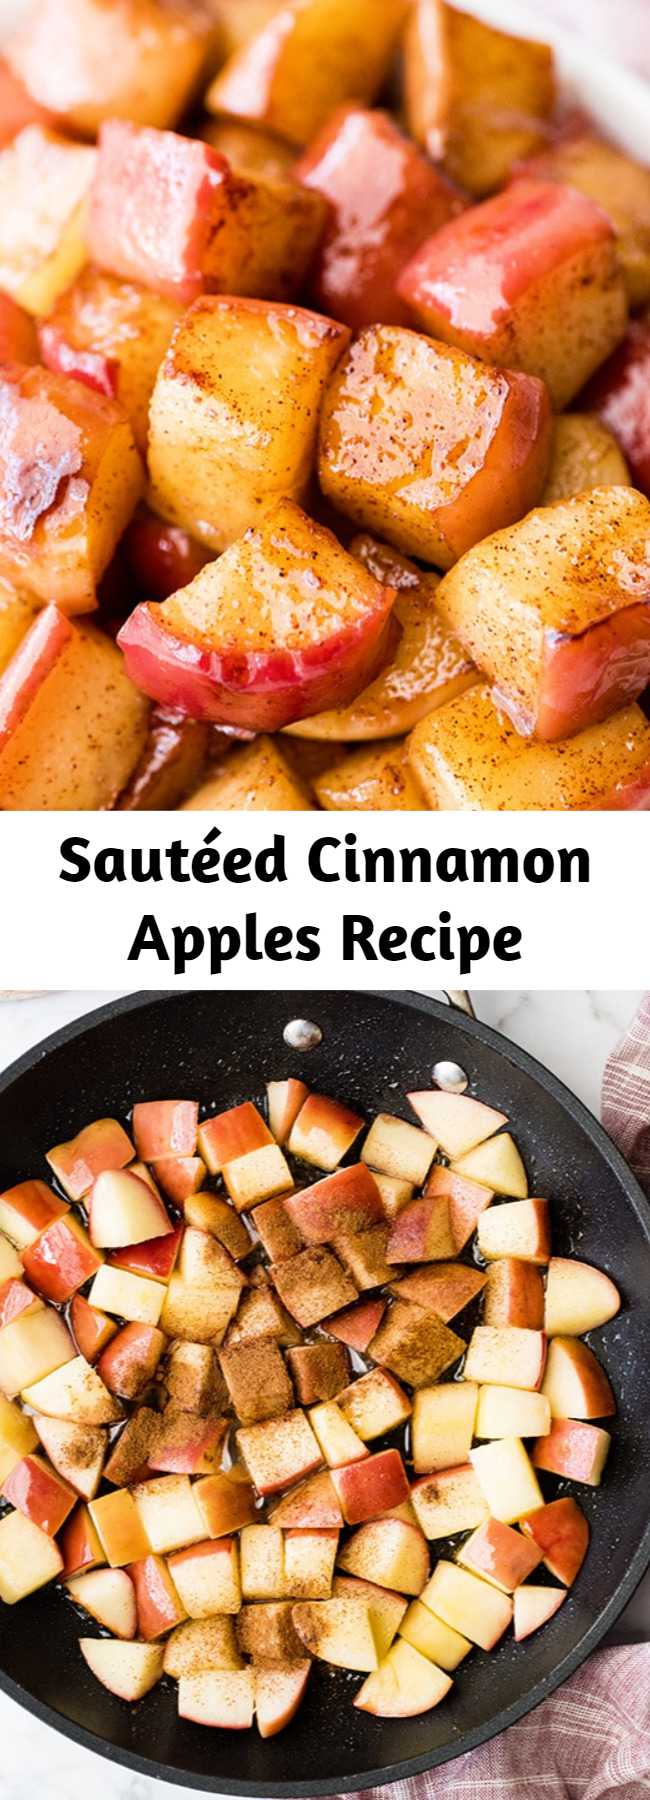 Sautéed Cinnamon Apples Recipe - These Stovetop Sautéed Cinnamon Apples taste like a warm apple pie, but they come together in 5 minutes and are SO much healthier! This recipe makes a perfect for breakfast, a snack, or dessert and is gluten, dairy and refined sugar free!